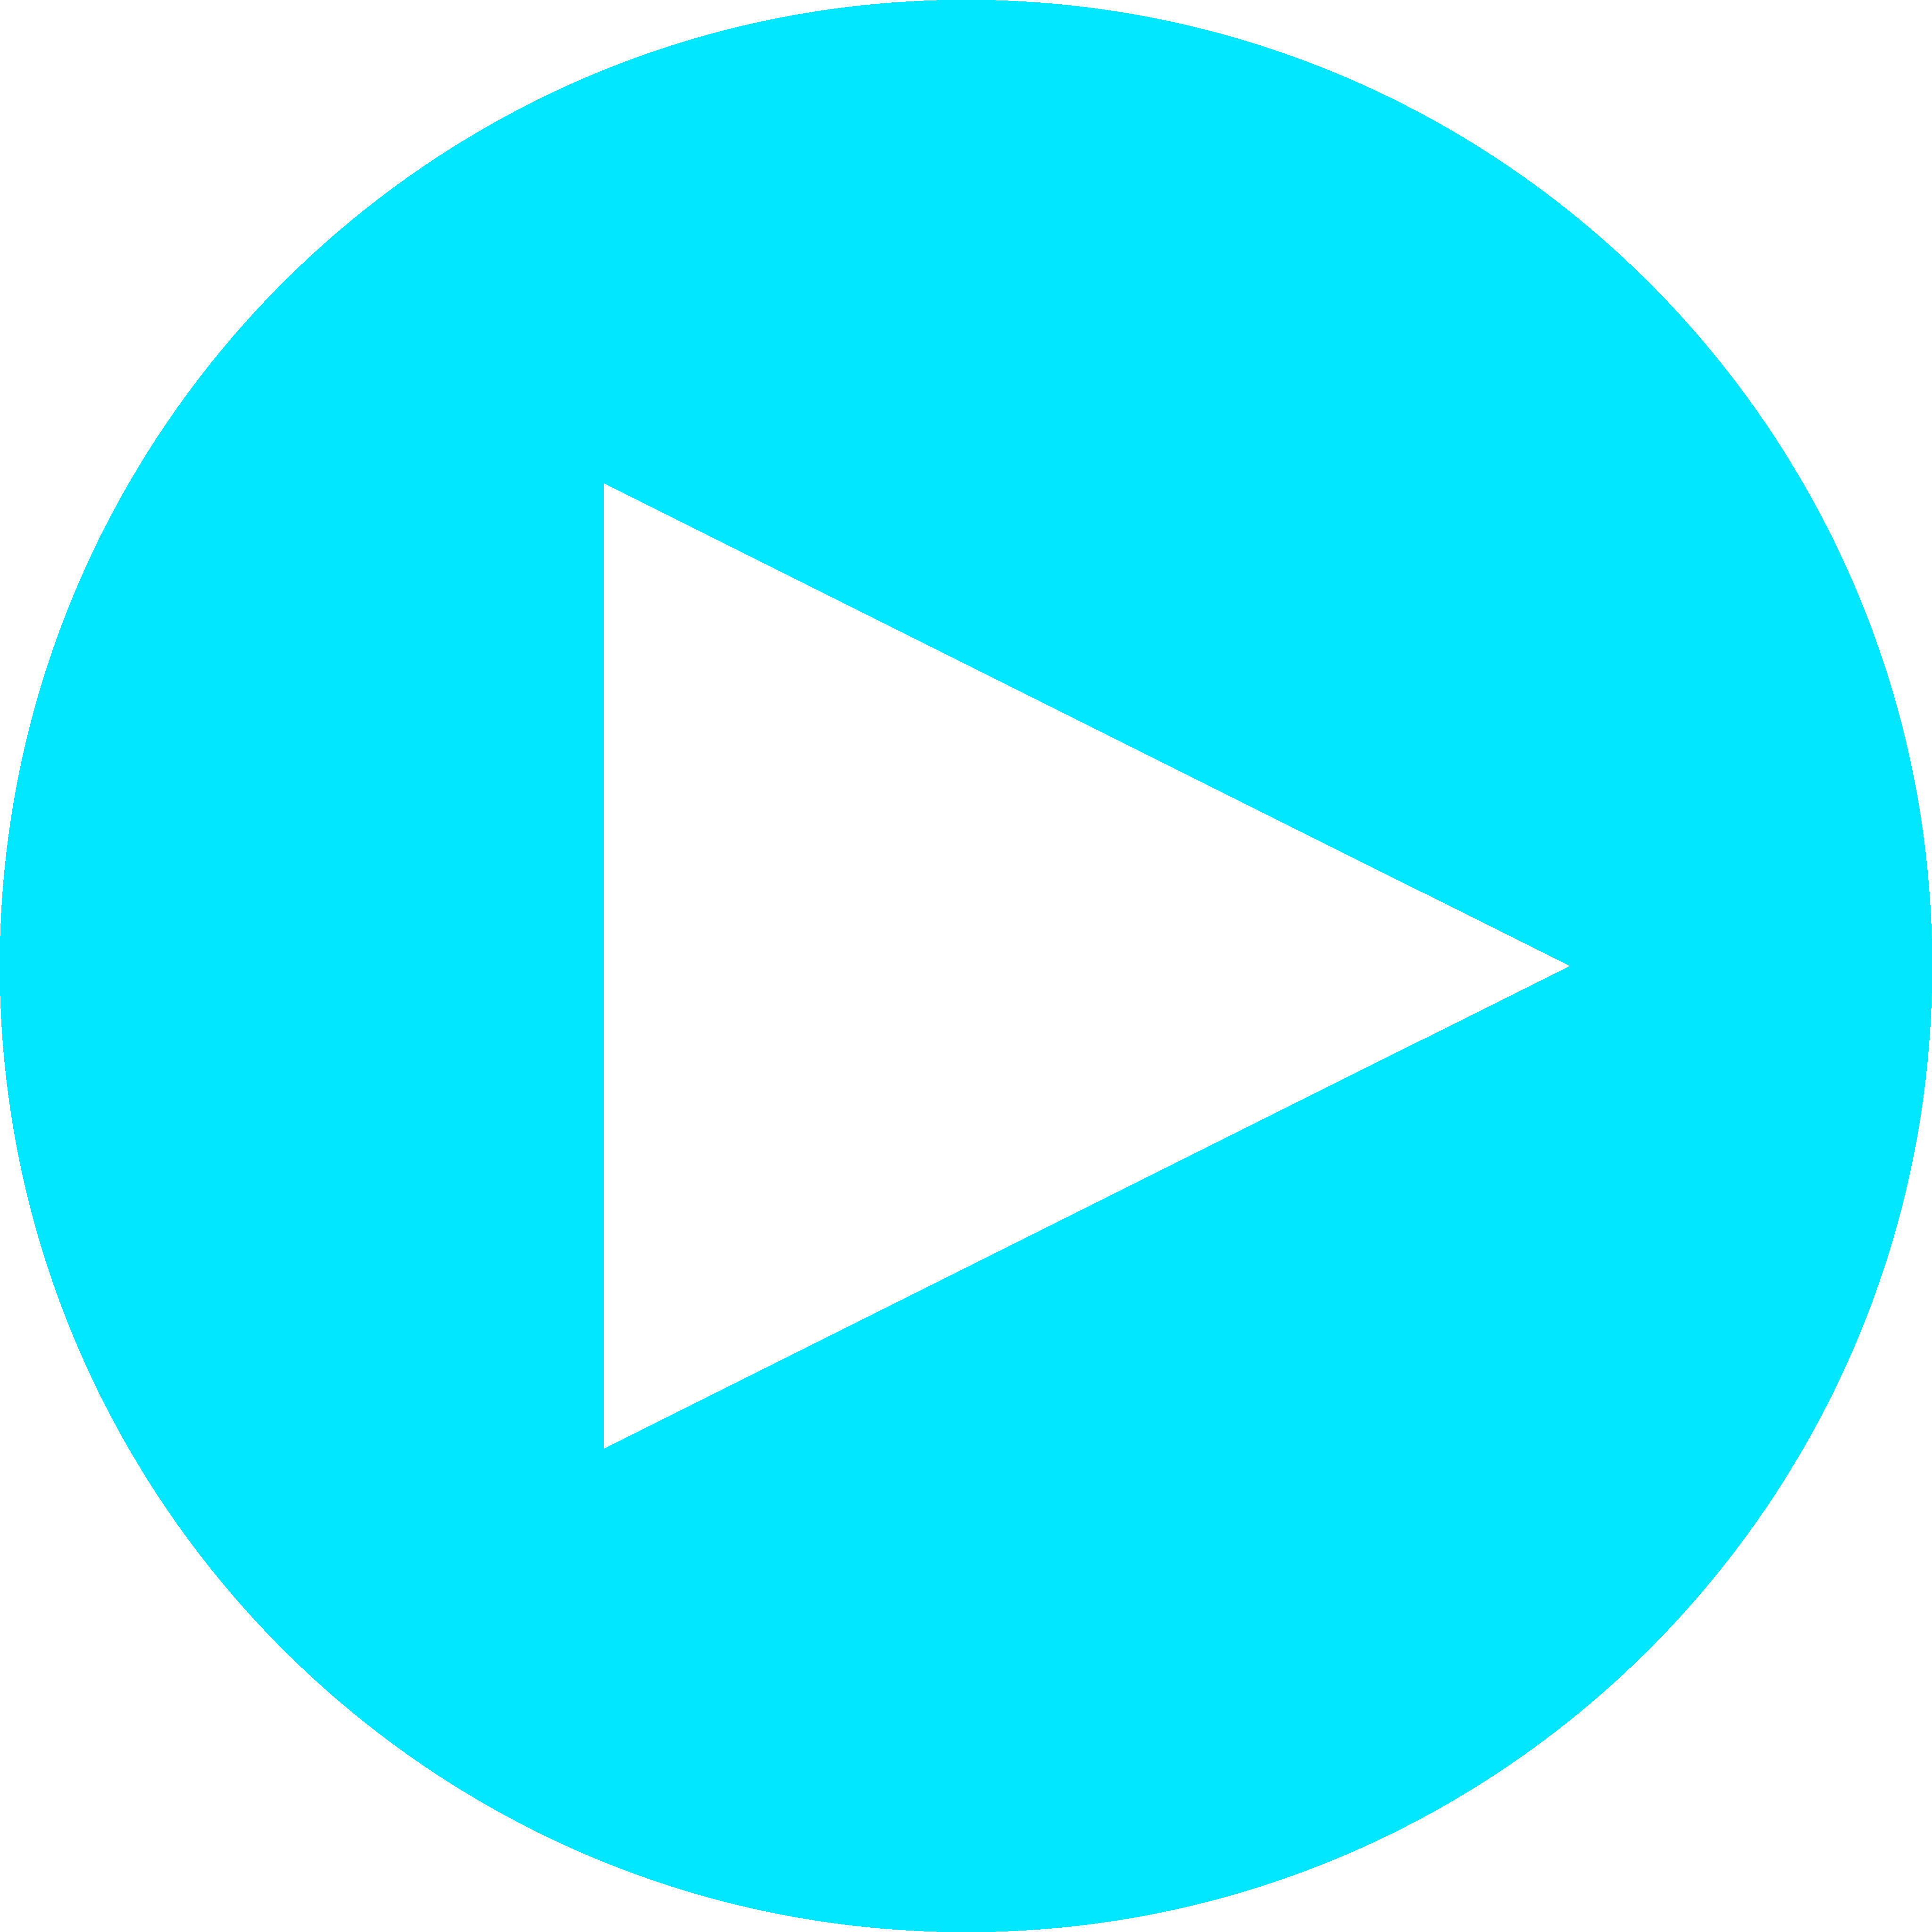 Blue play icon